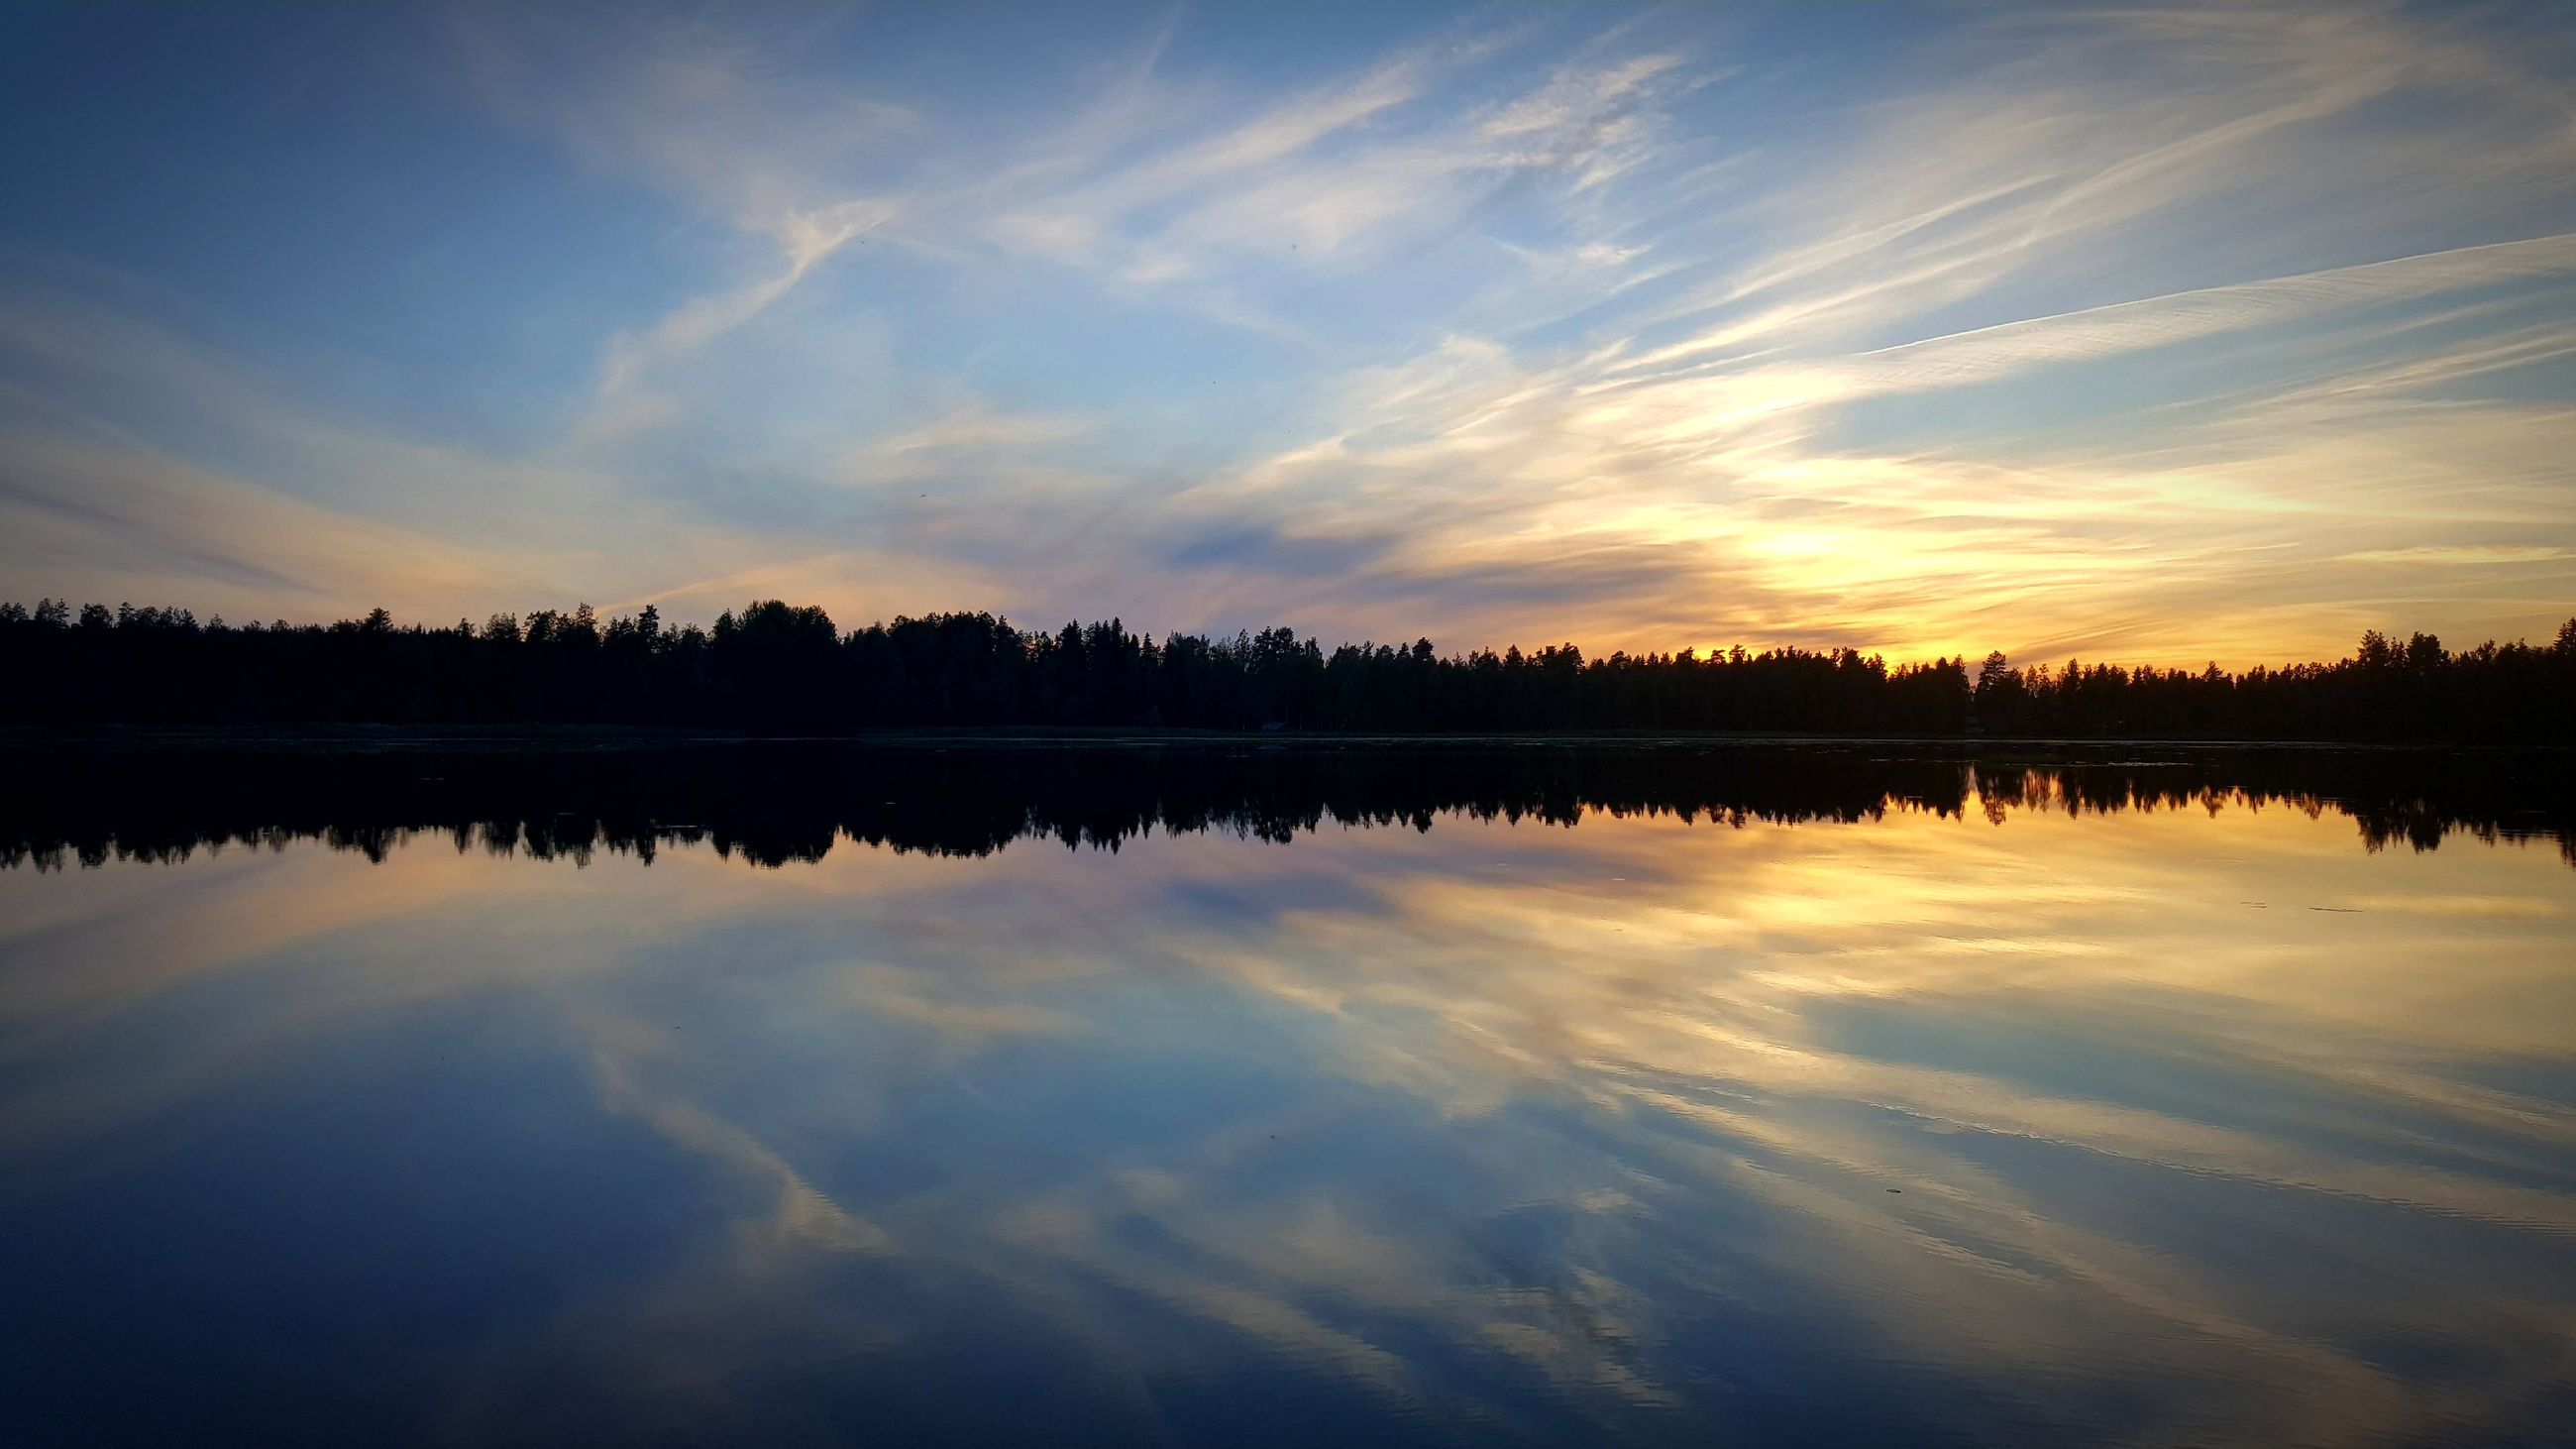 reflection, water, sunset, sky, lake, beauty in nature, nature, silhouette, tranquil scene, cloud - sky, scenics, tranquility, standing water, no people, waterfront, outdoors, tree, symmetry, day